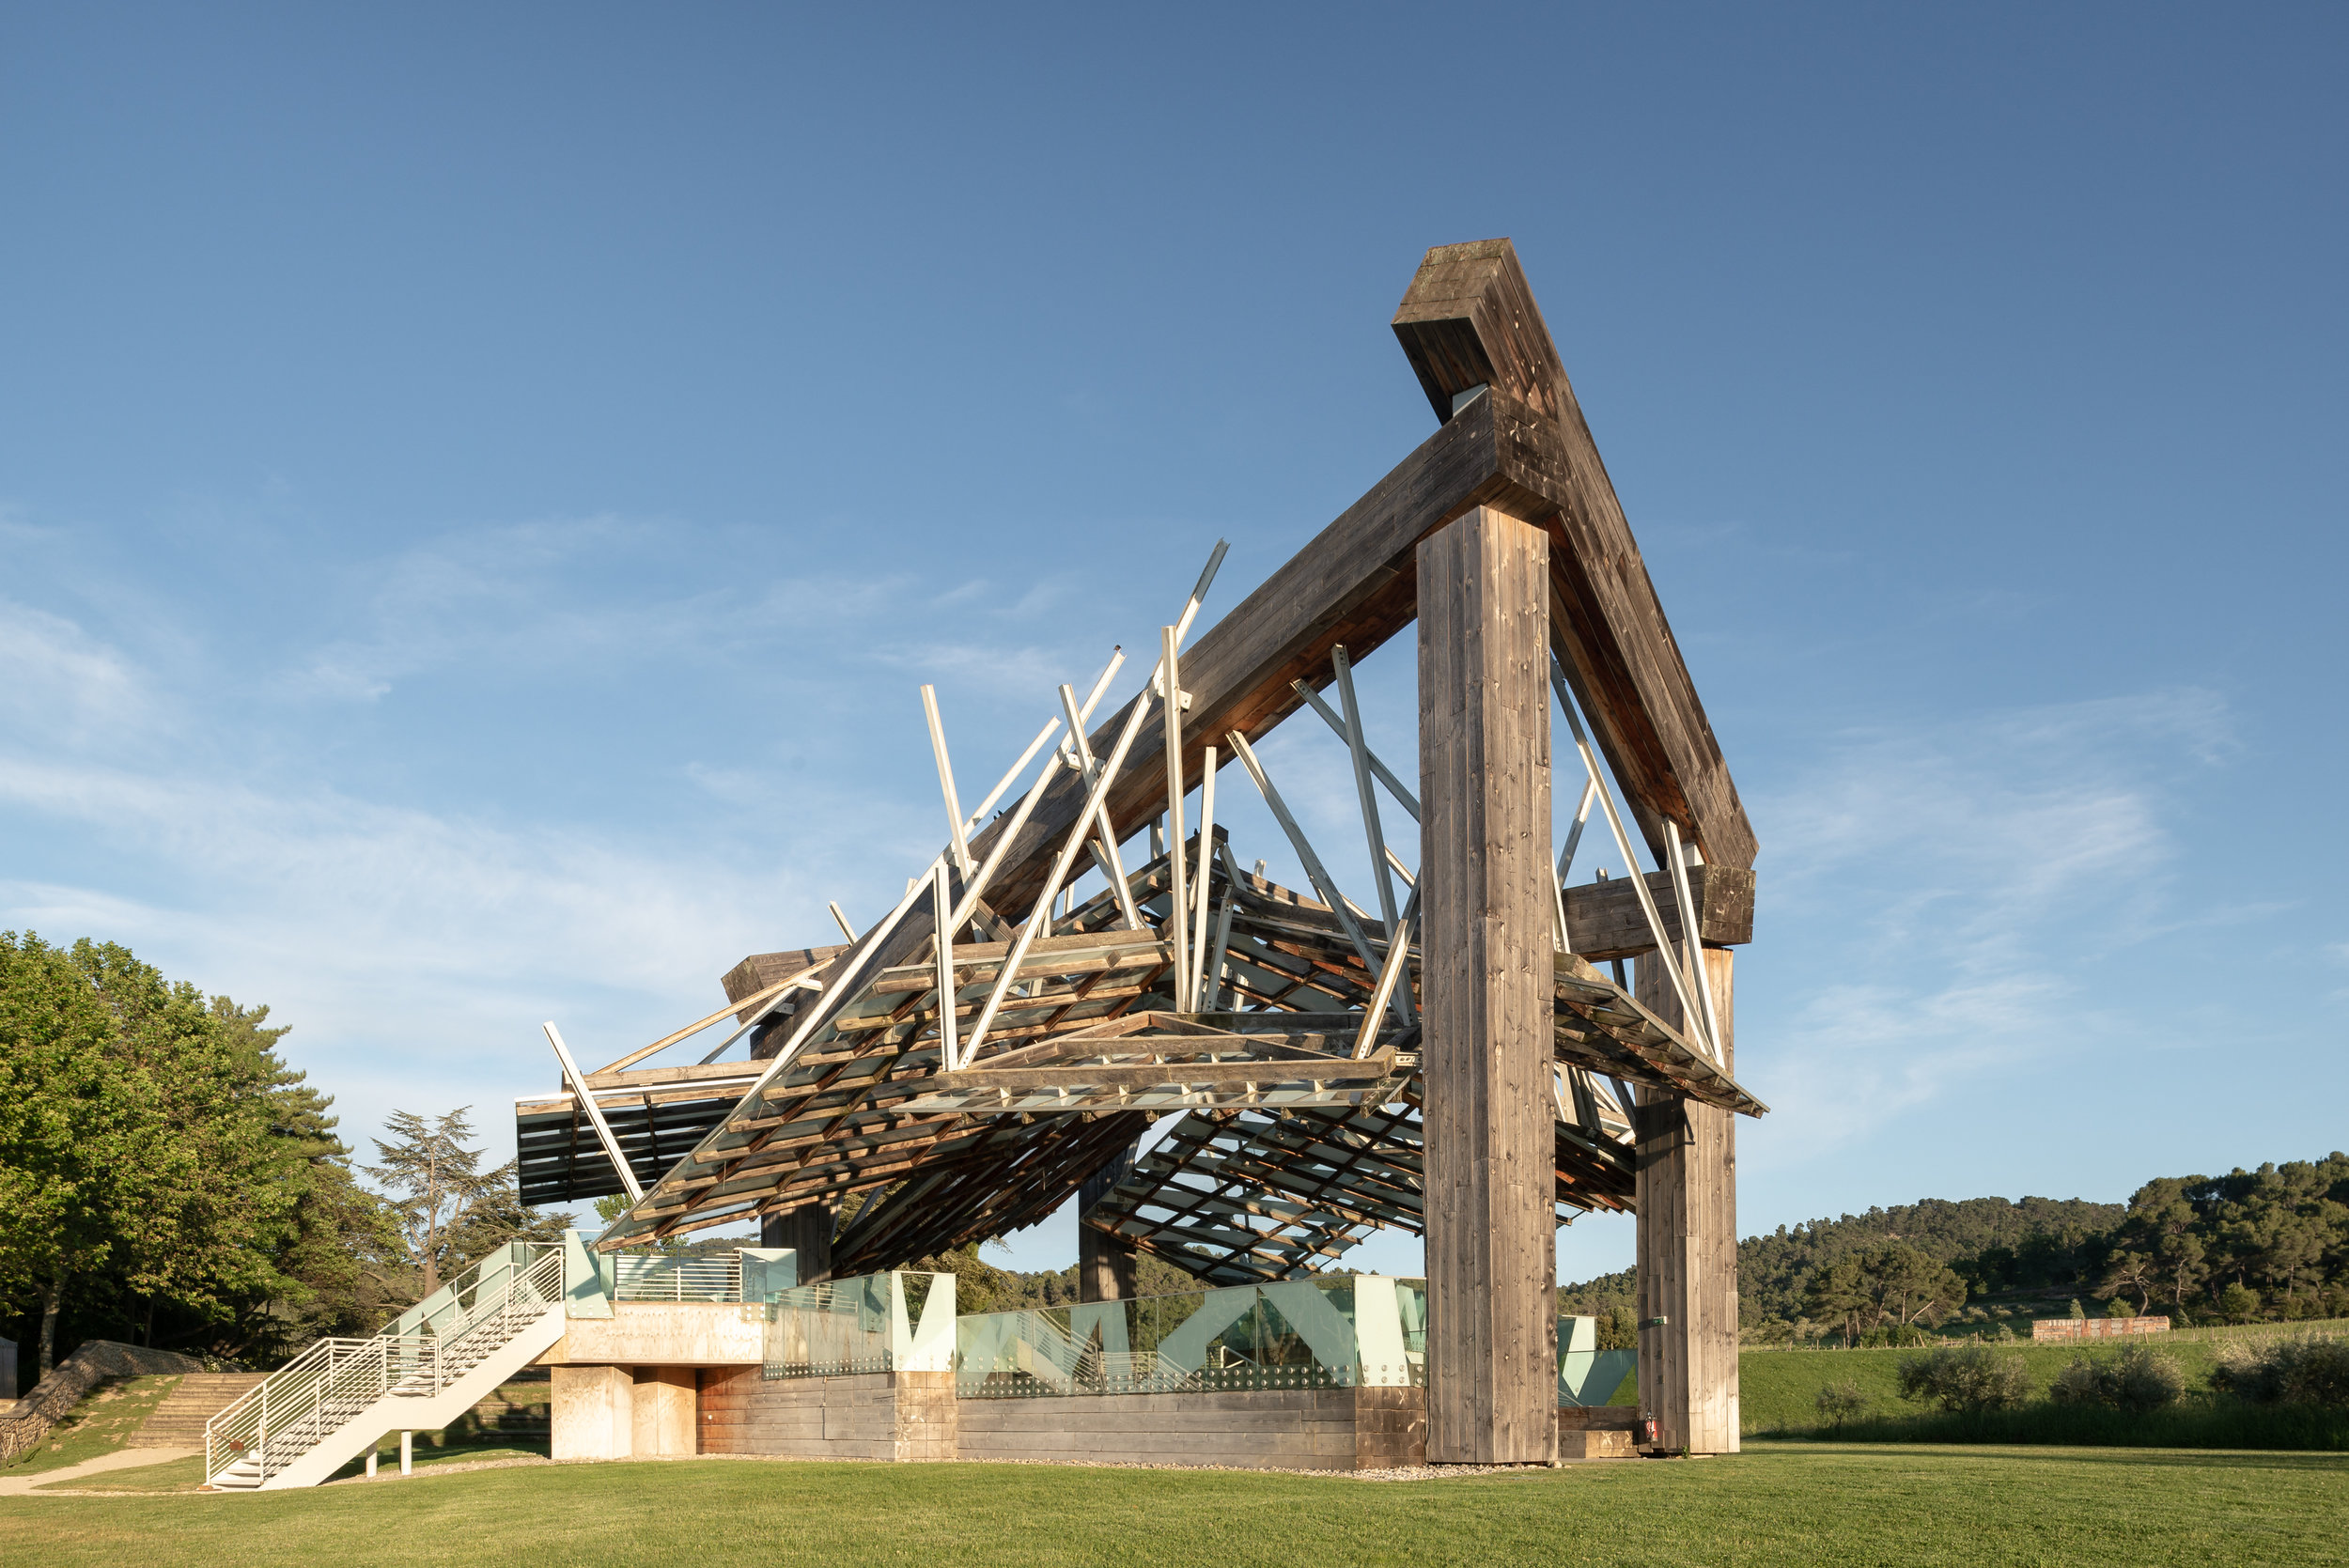 Music Pavilion by Frank O. Gehry